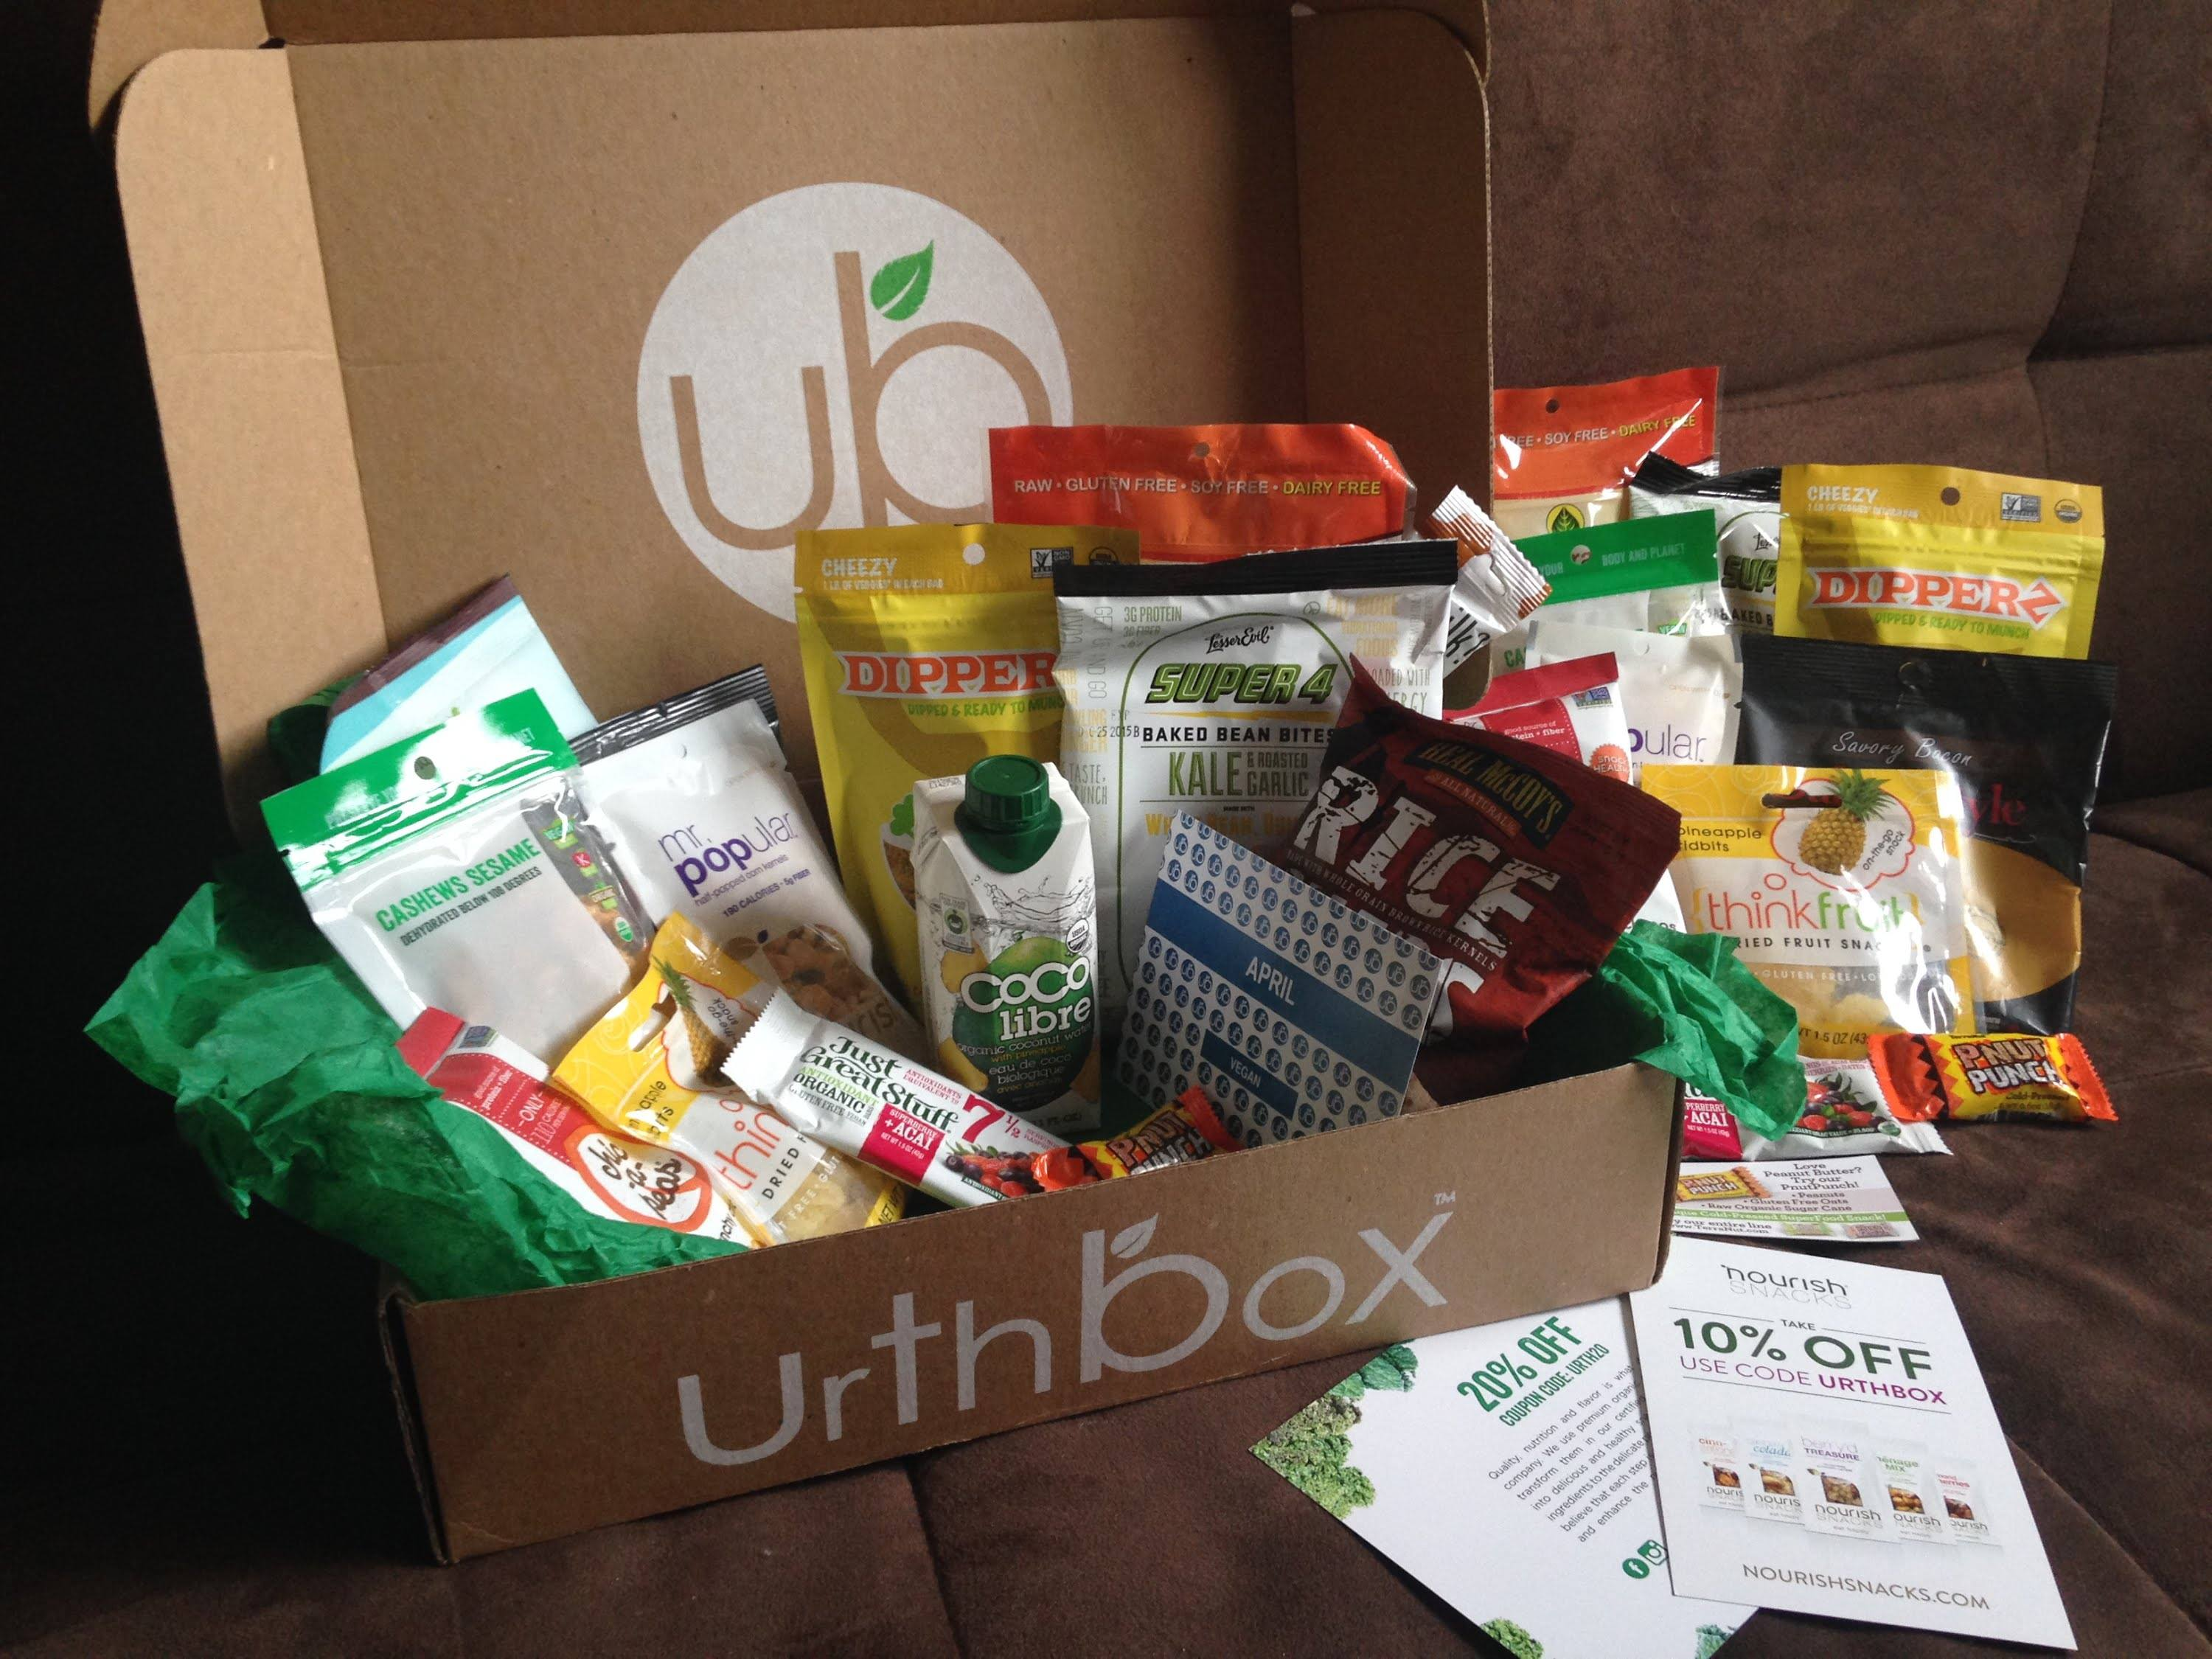 Urth Box Vegan